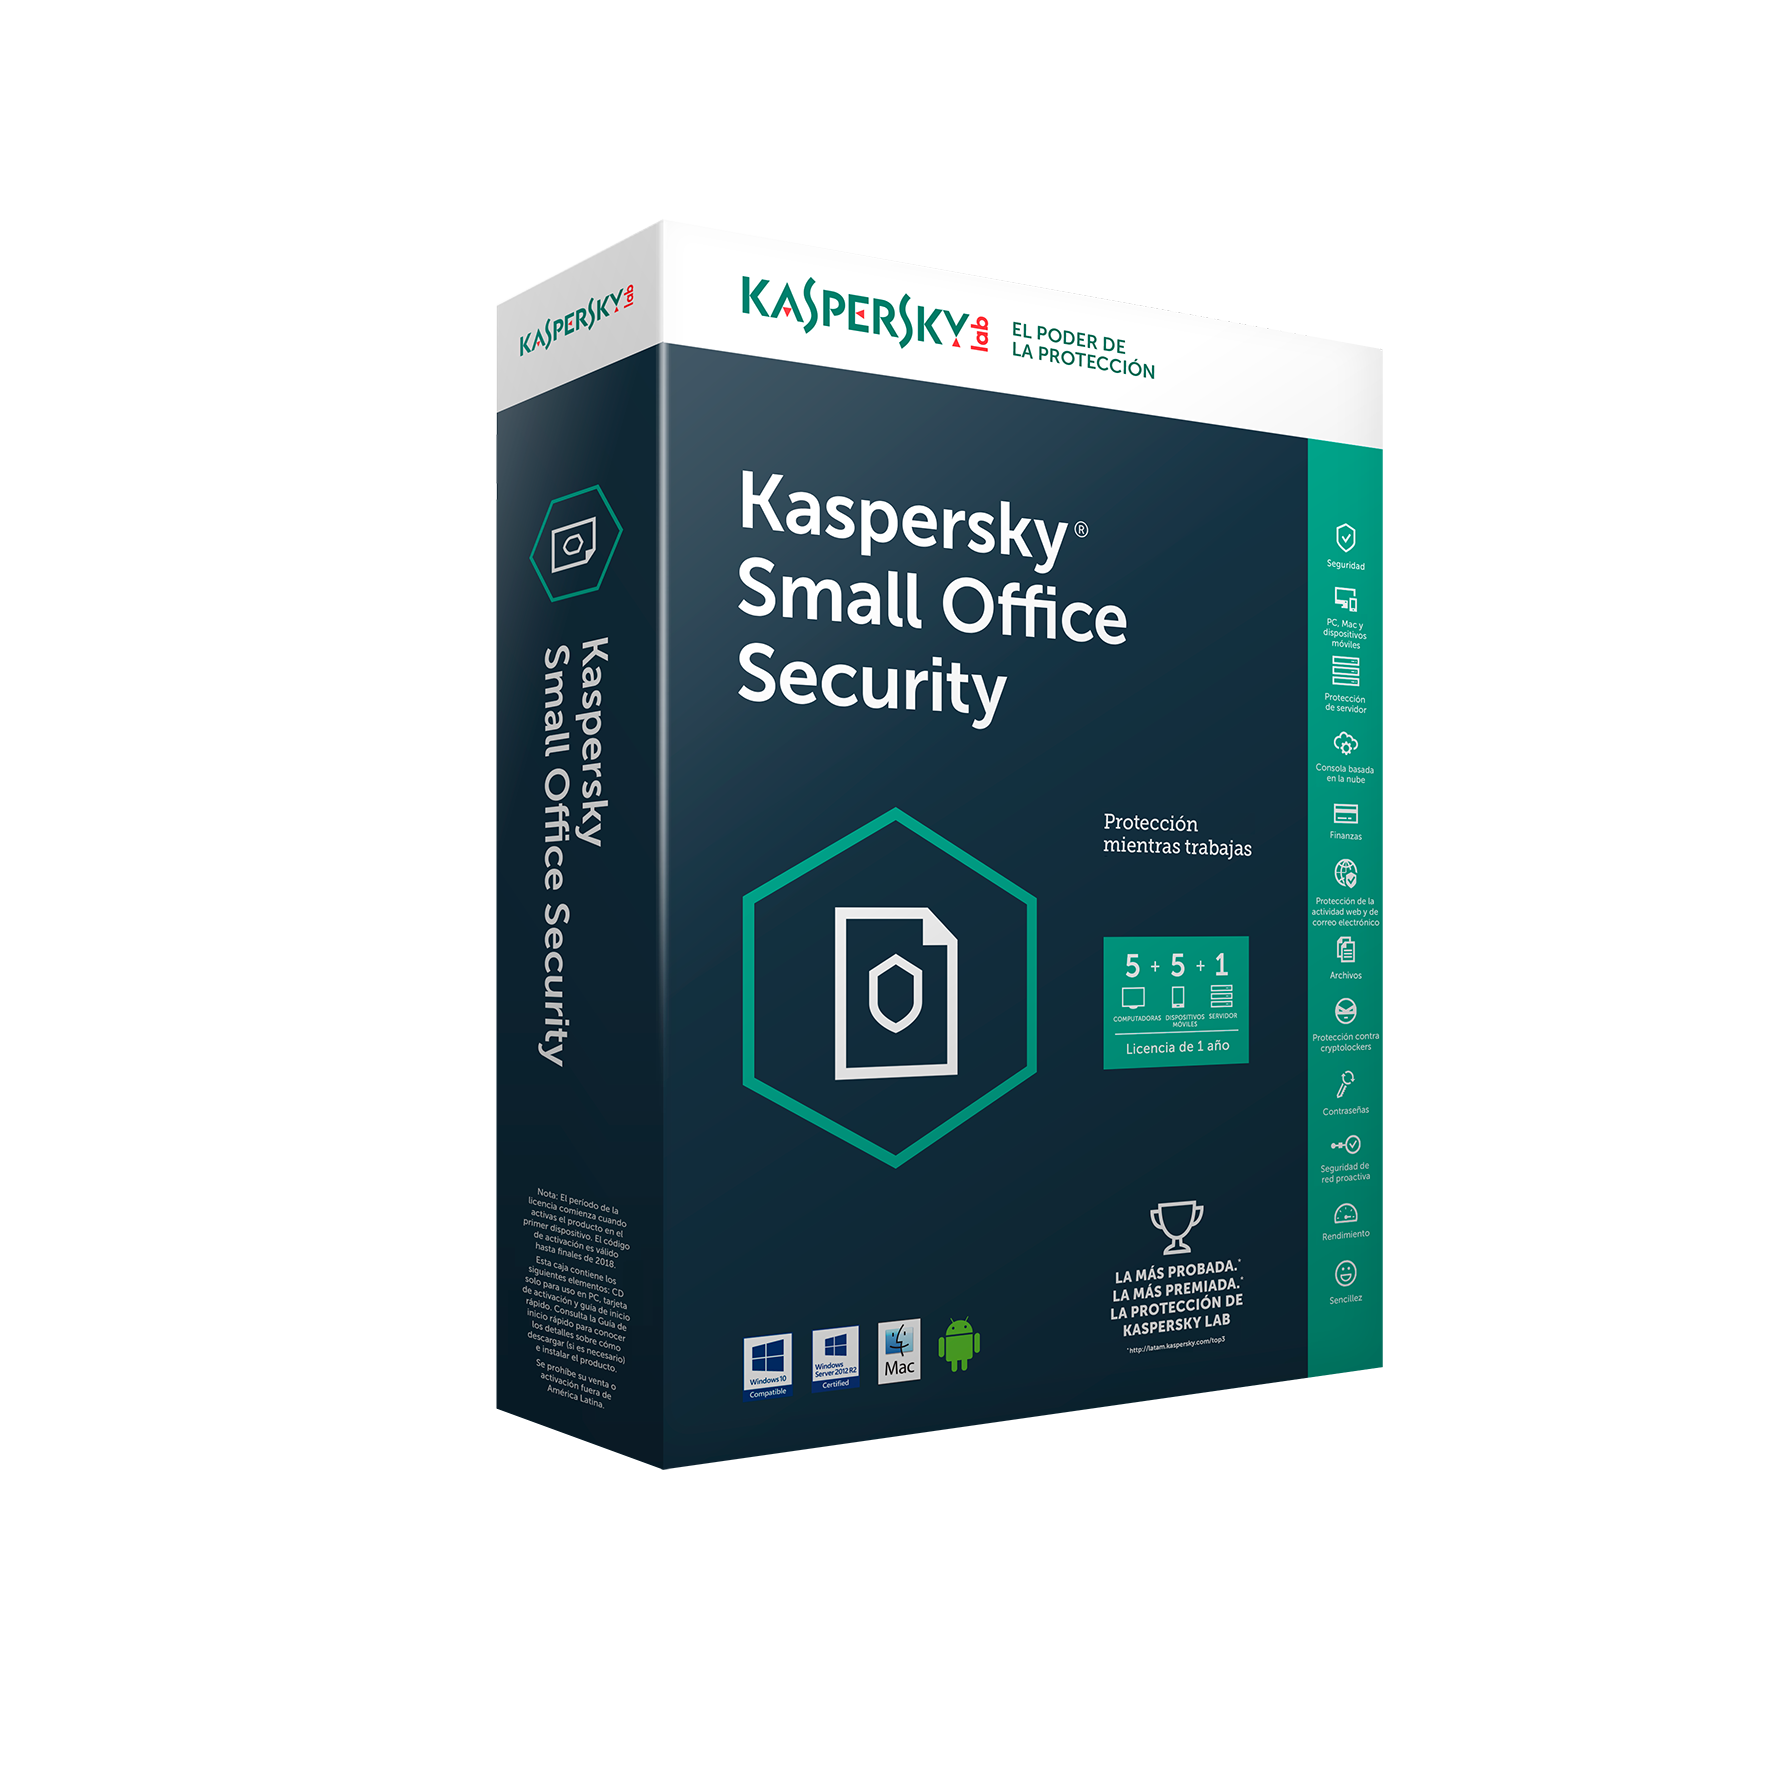 How to solve database update issues with kaspersky lab products.